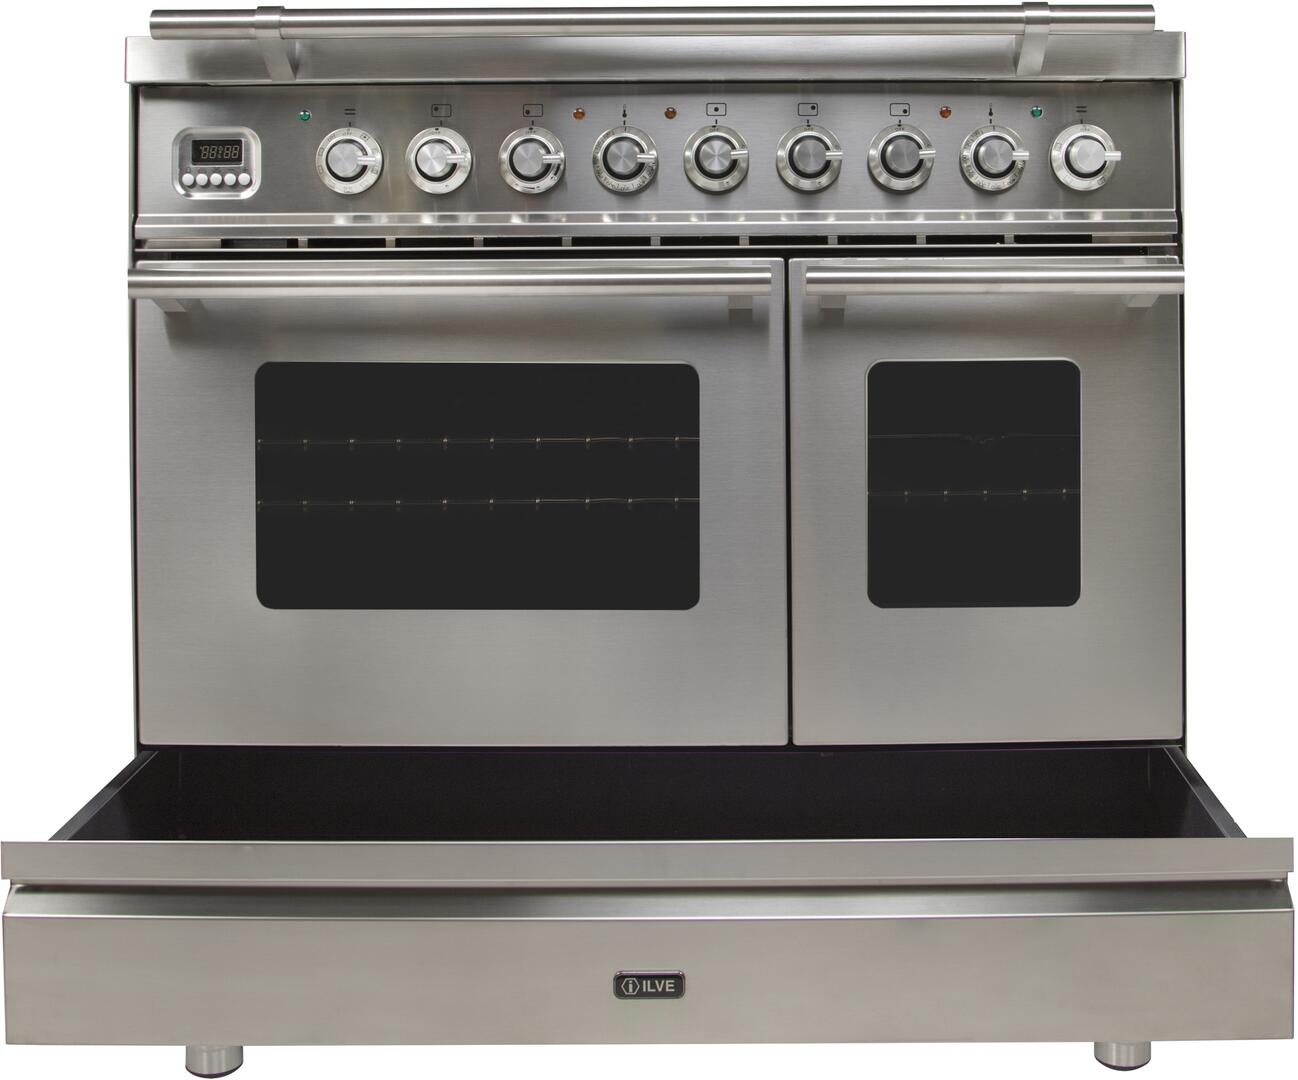 Ilve Professional Plus UPDW90FDMPILP Freestanding Dual Fuel Range Stainless Steel, UPW90FDMPI Storage Drawer Opened